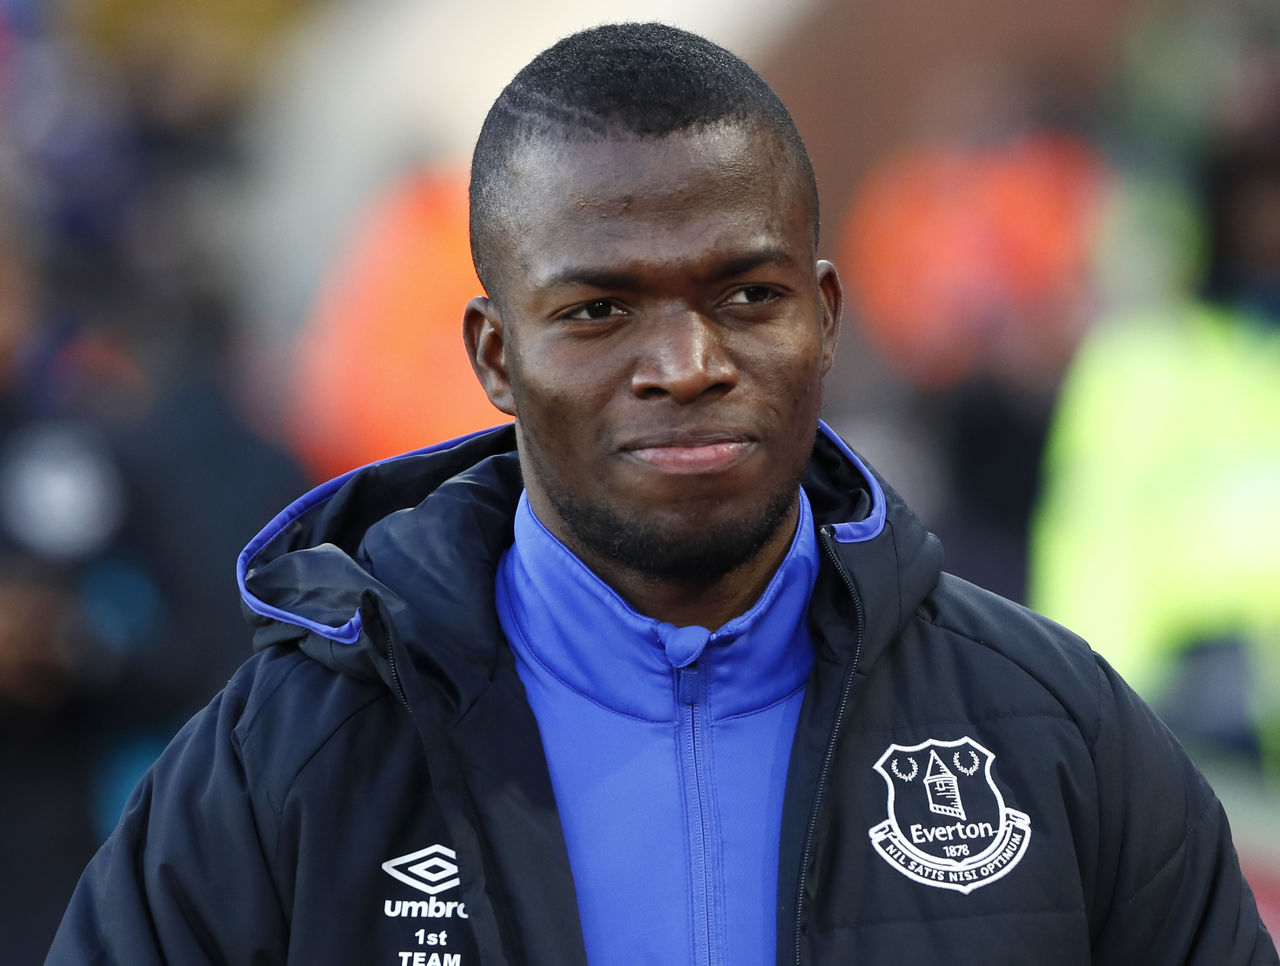 Report West Ham ready to sell Enner Valencia to Tigres